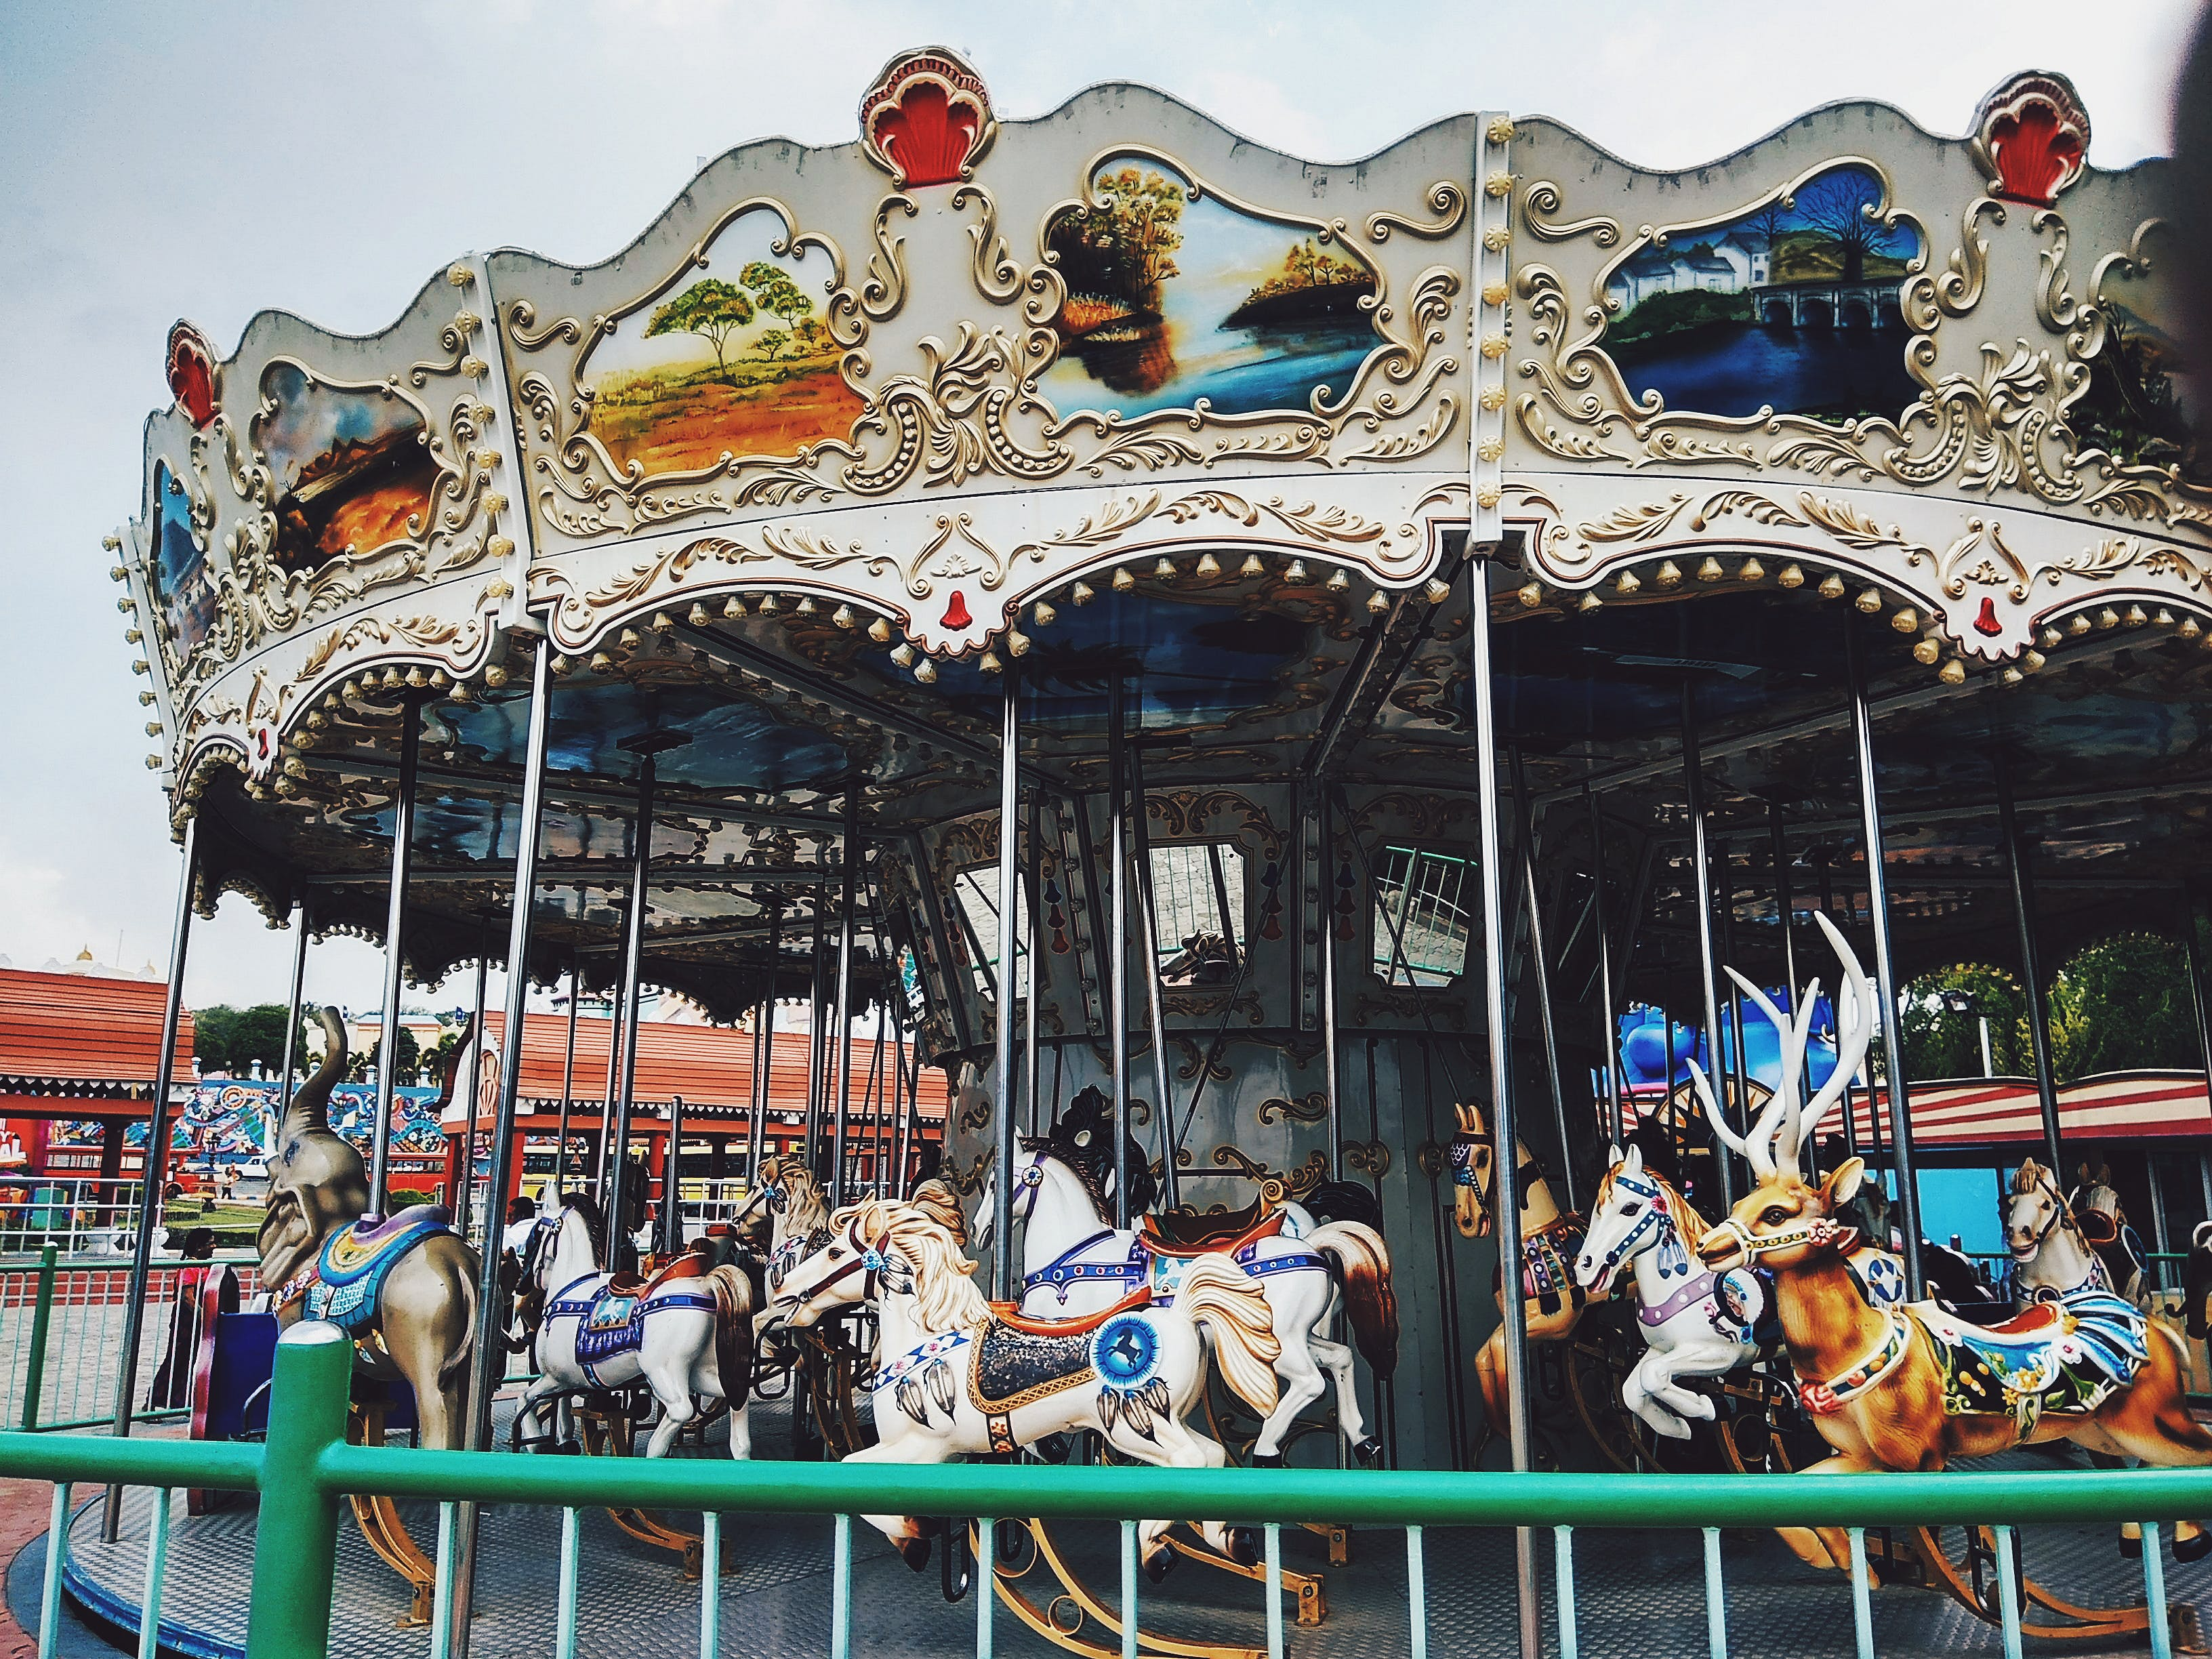 White and Green Carousel